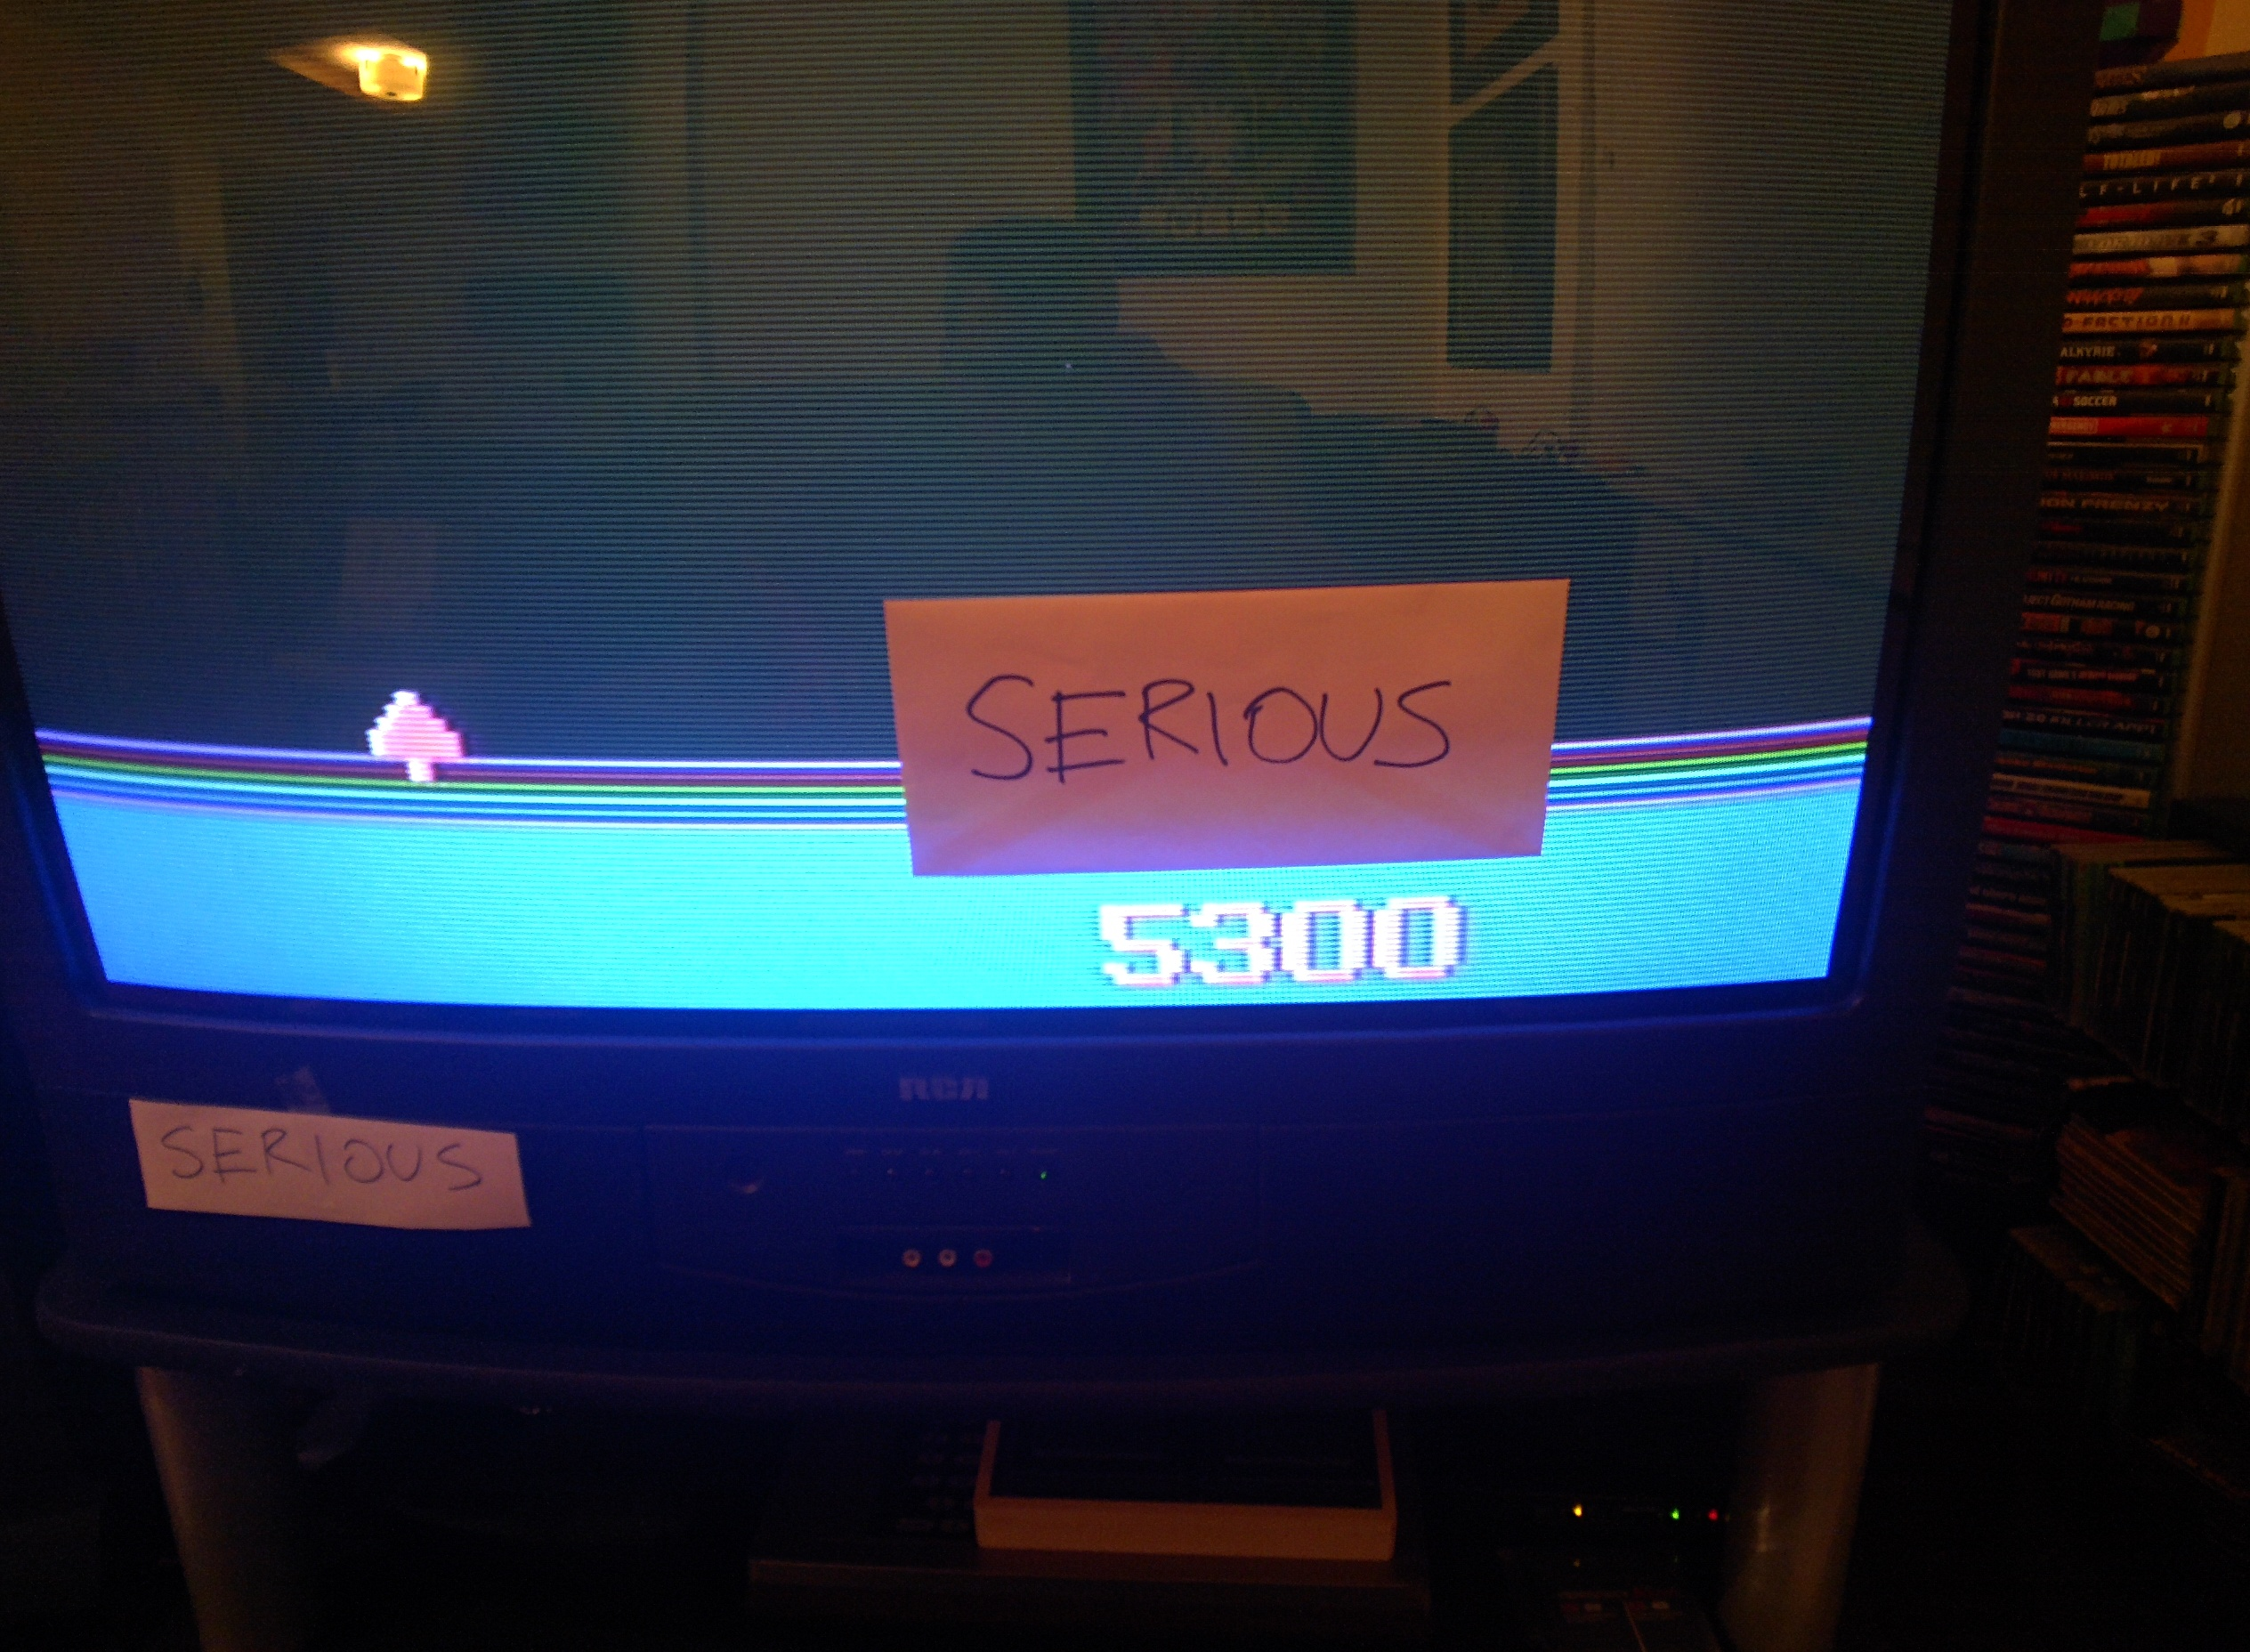 Serious: Demon Attack (Odyssey 2 / Videopac) 5,300 points on 2014-05-31 18:18:05